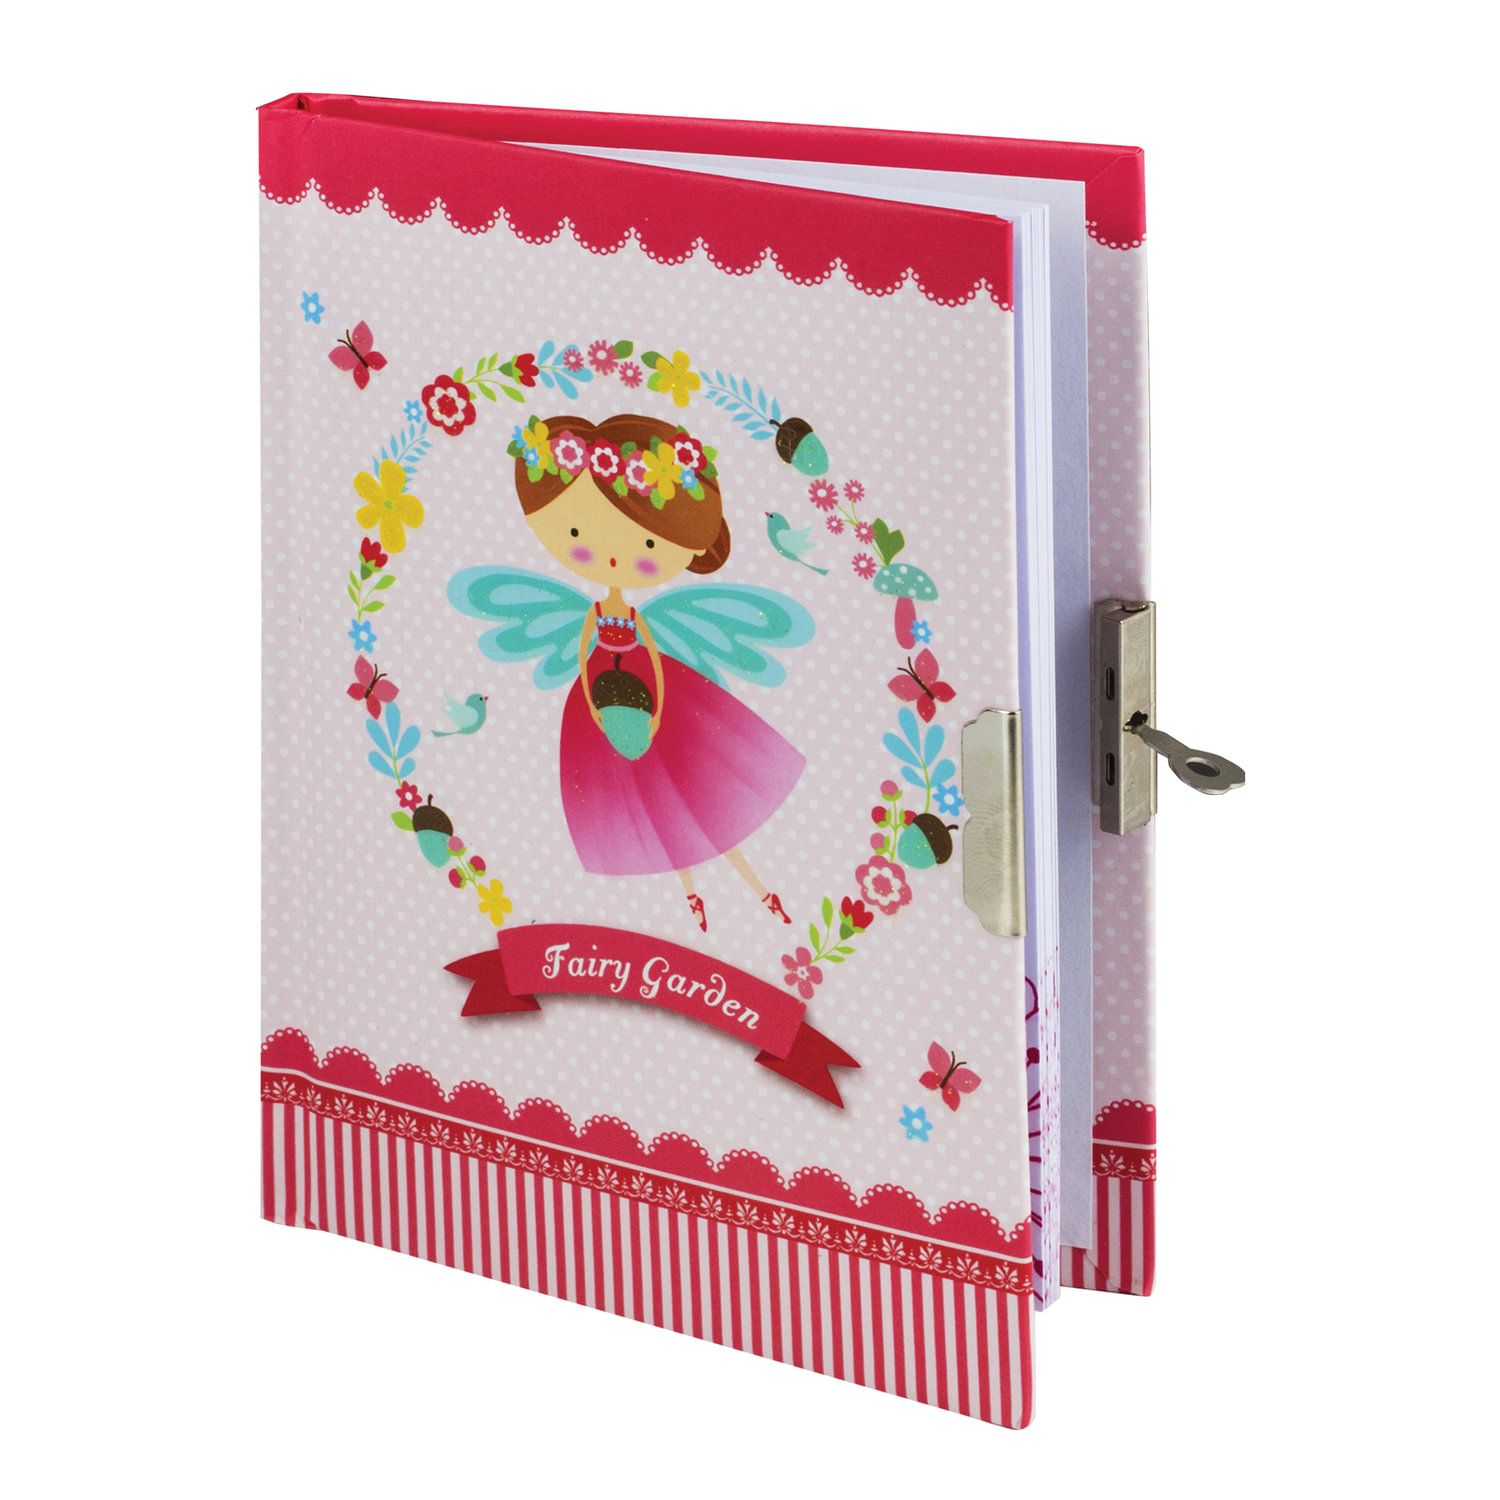 """BRAUBERG / Notebook """"Little fairy"""", 56 sheets A5 (133x178 mm), hardcover, metal lock, sequins, gift wrapping, line"""